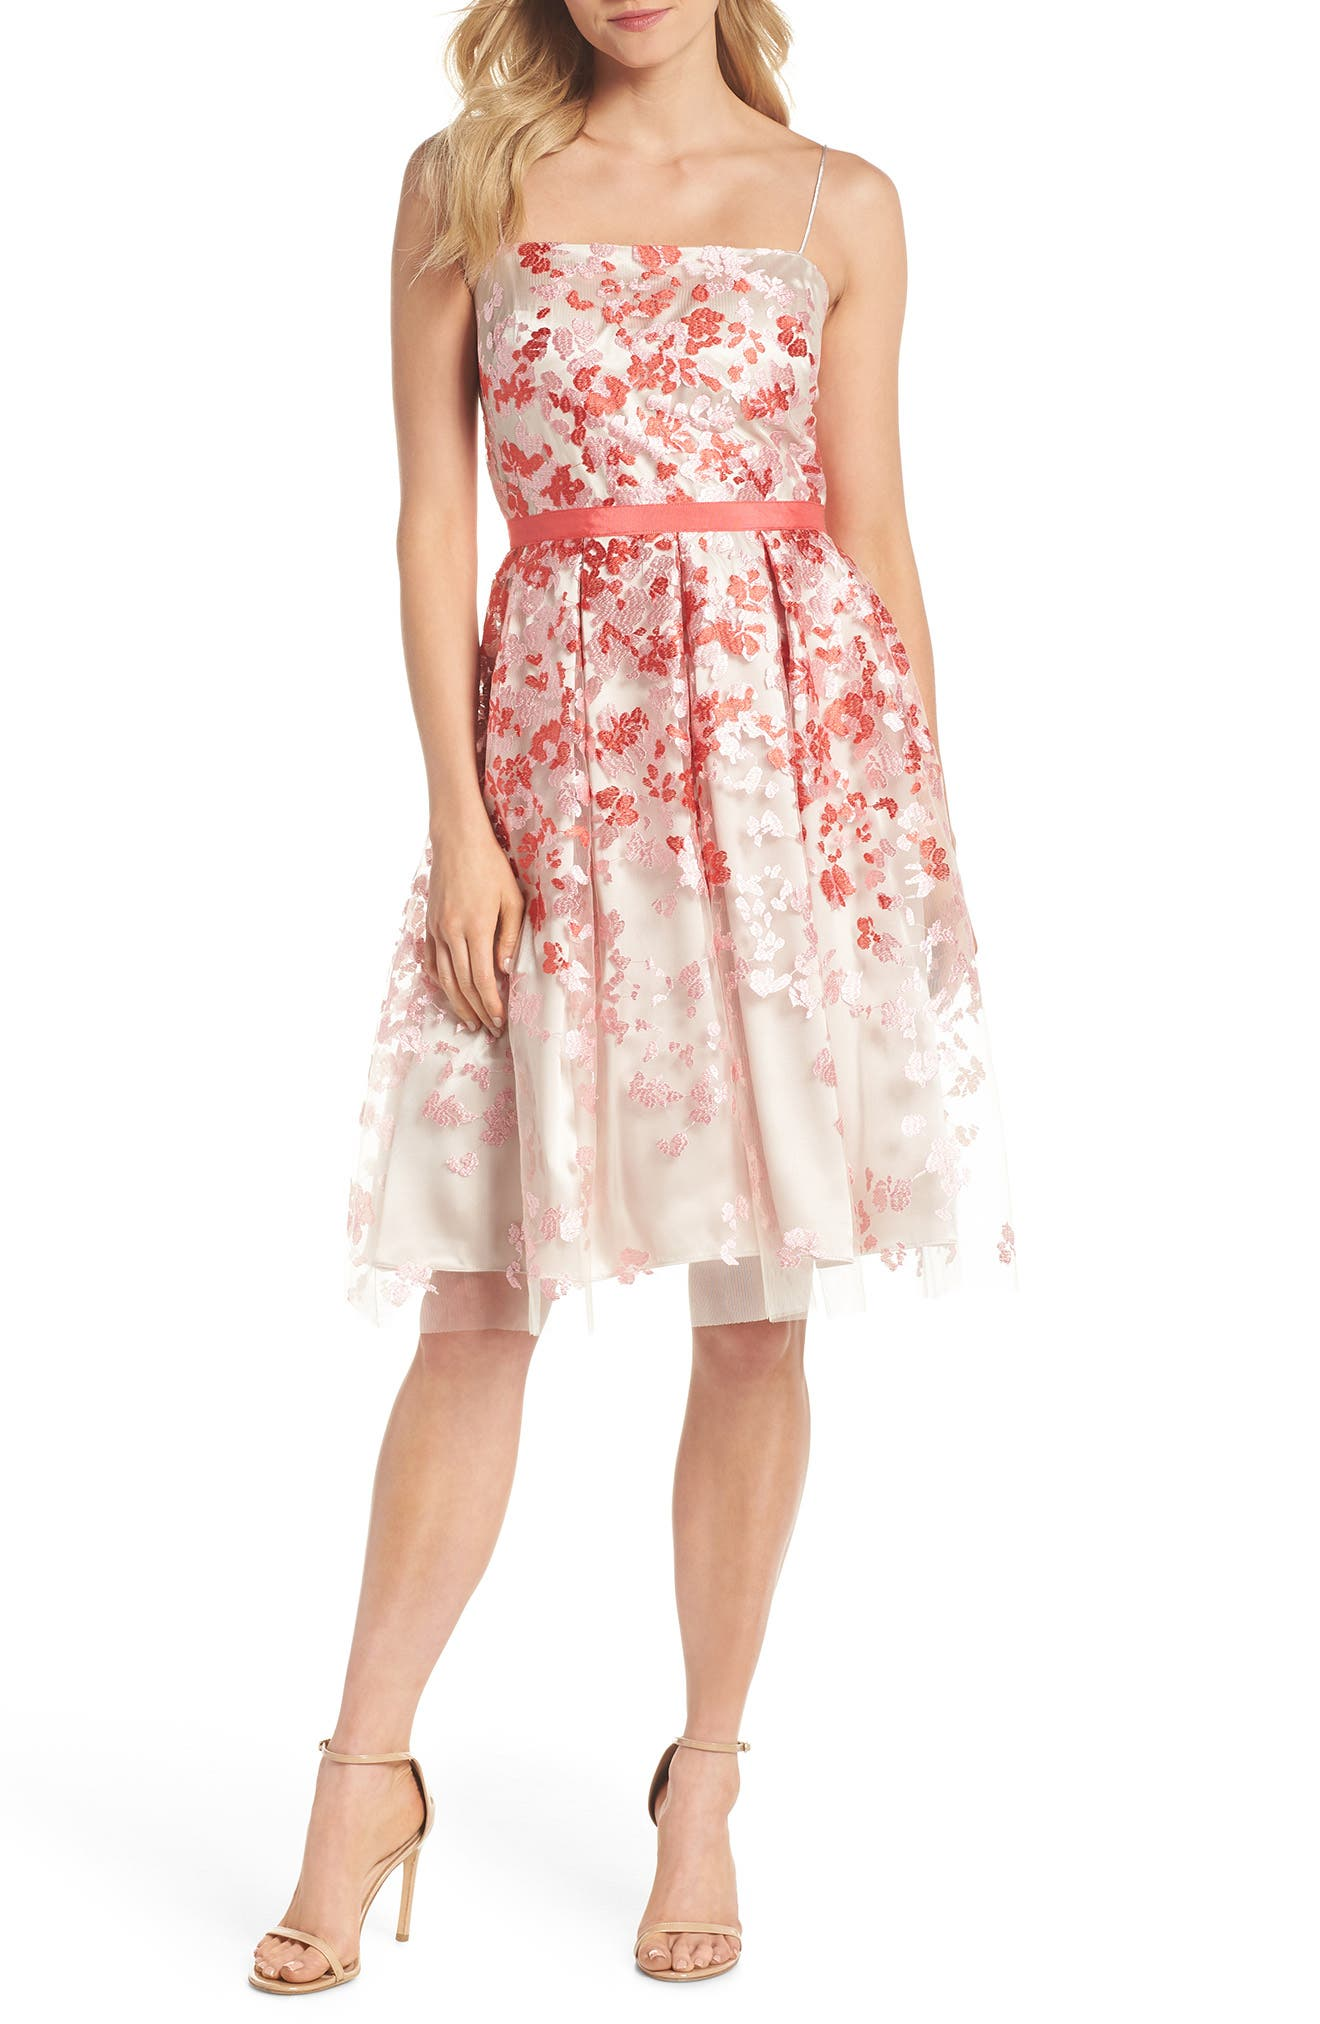 Embroidered Fit & Flare Cocktail Dress,                             Main thumbnail 1, color,                             Pink Multi